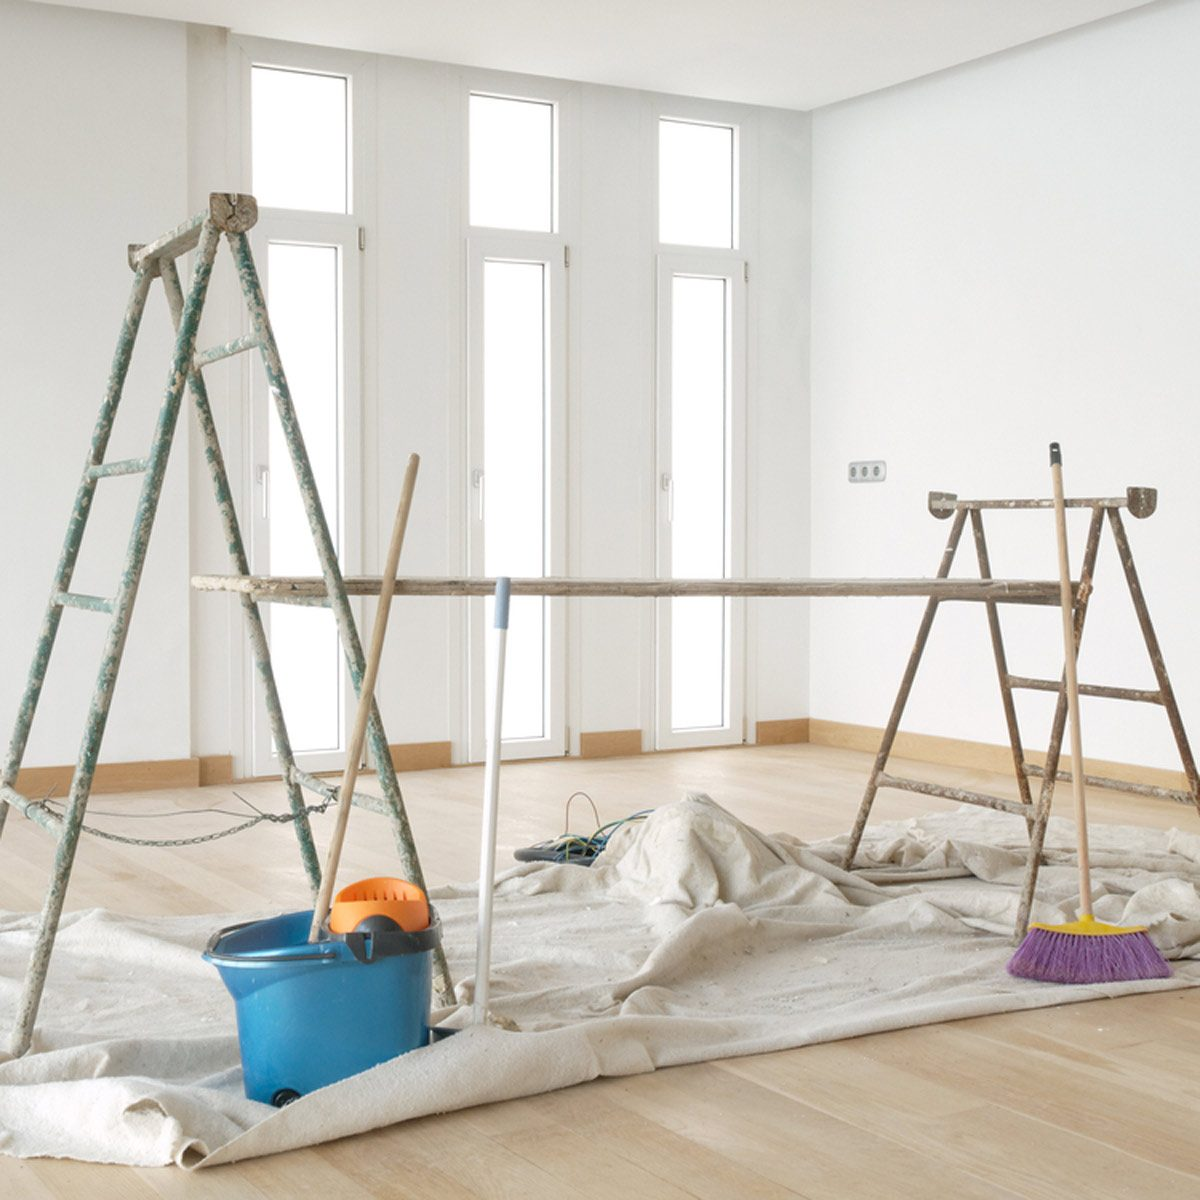 How to Prep for Painting: Ladders and Scaffold